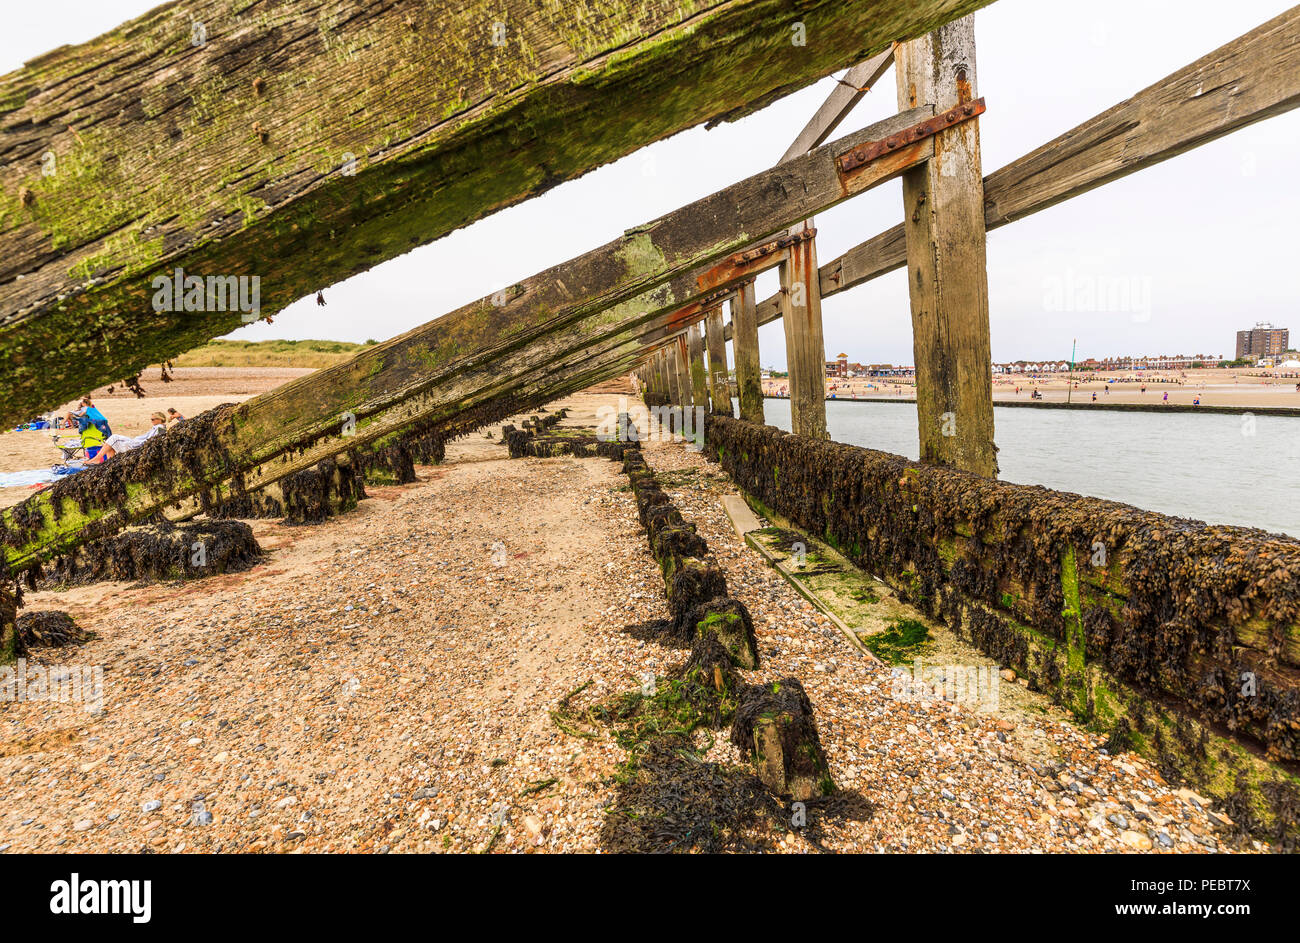 Substantial wooden groyne on West Beach next to the River Arun, Littlehampton, a small holiday resort on the south coast in West Sussex, UK in summer - Stock Image